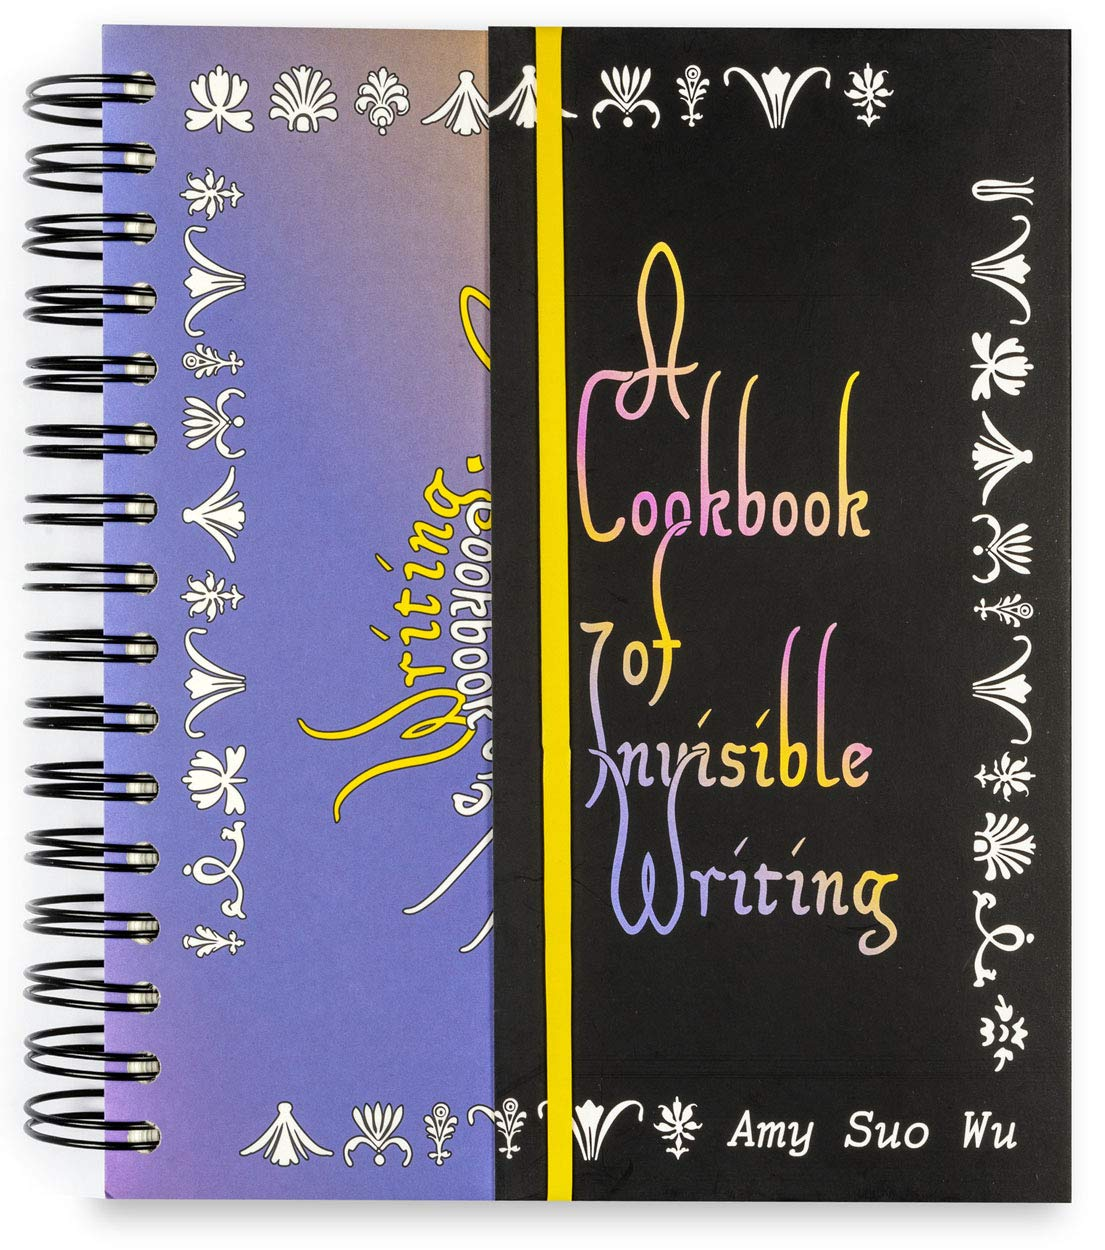 A cookbook of invisible writing by Amy Suo Wu